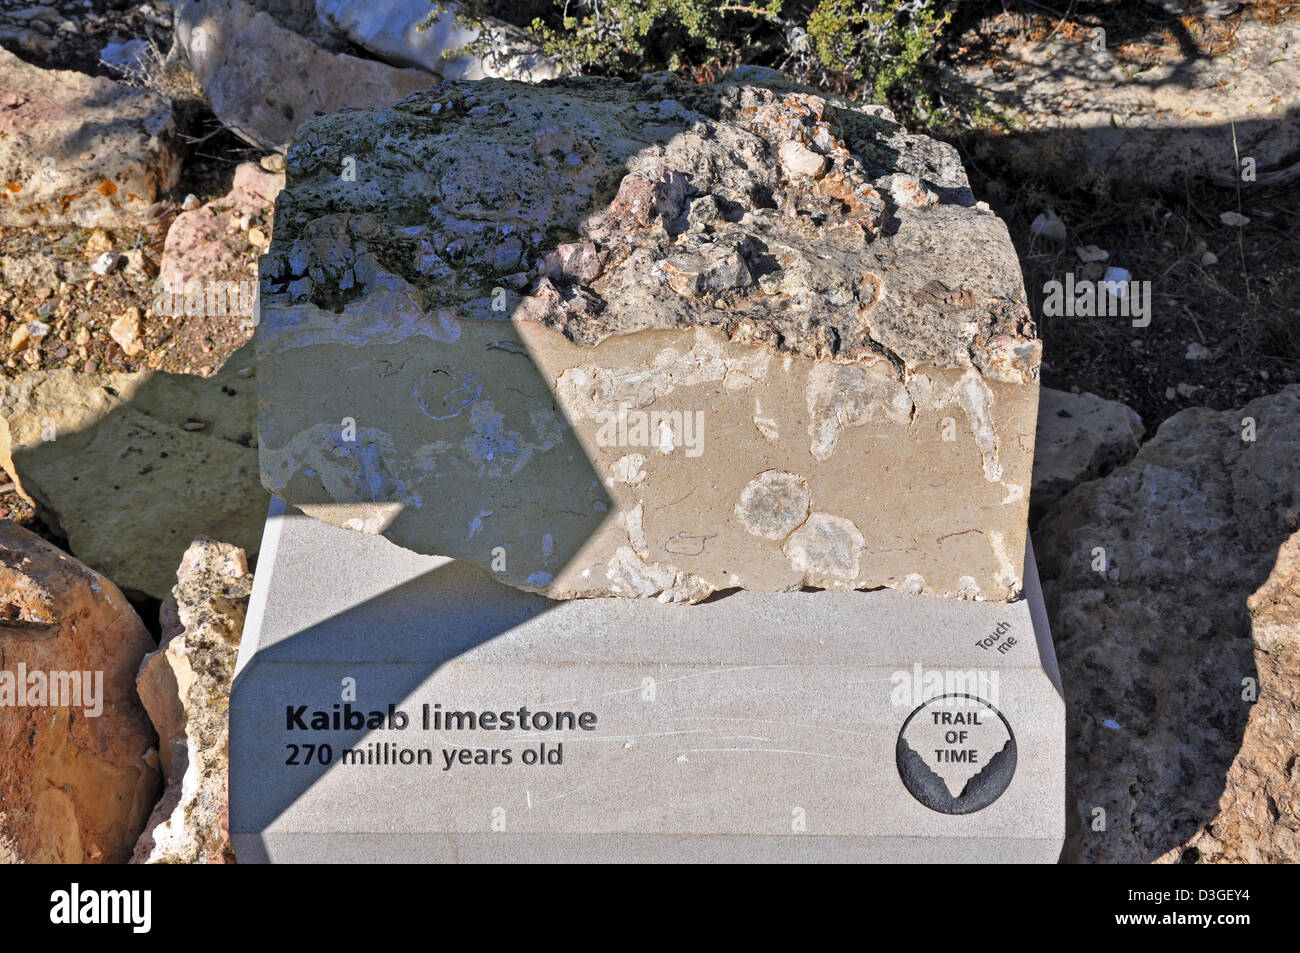 Grand Canyon Trail of Time - Kaibab Limestone - 0454 - Stock Image